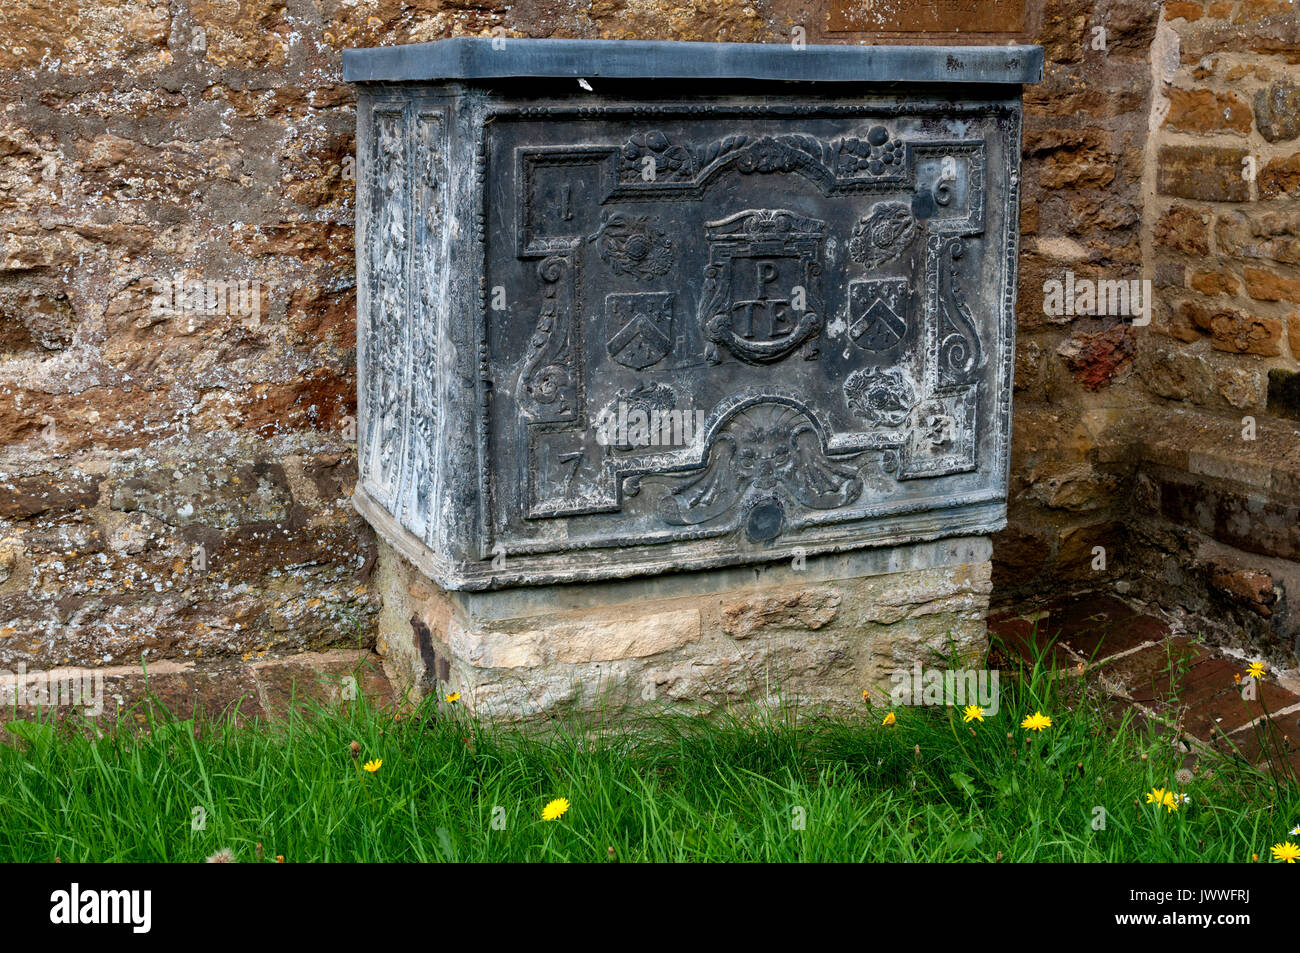 17th century lead trough outside St. Martin`s Church, Welton, Northamptonshire, England, UK - Stock Image